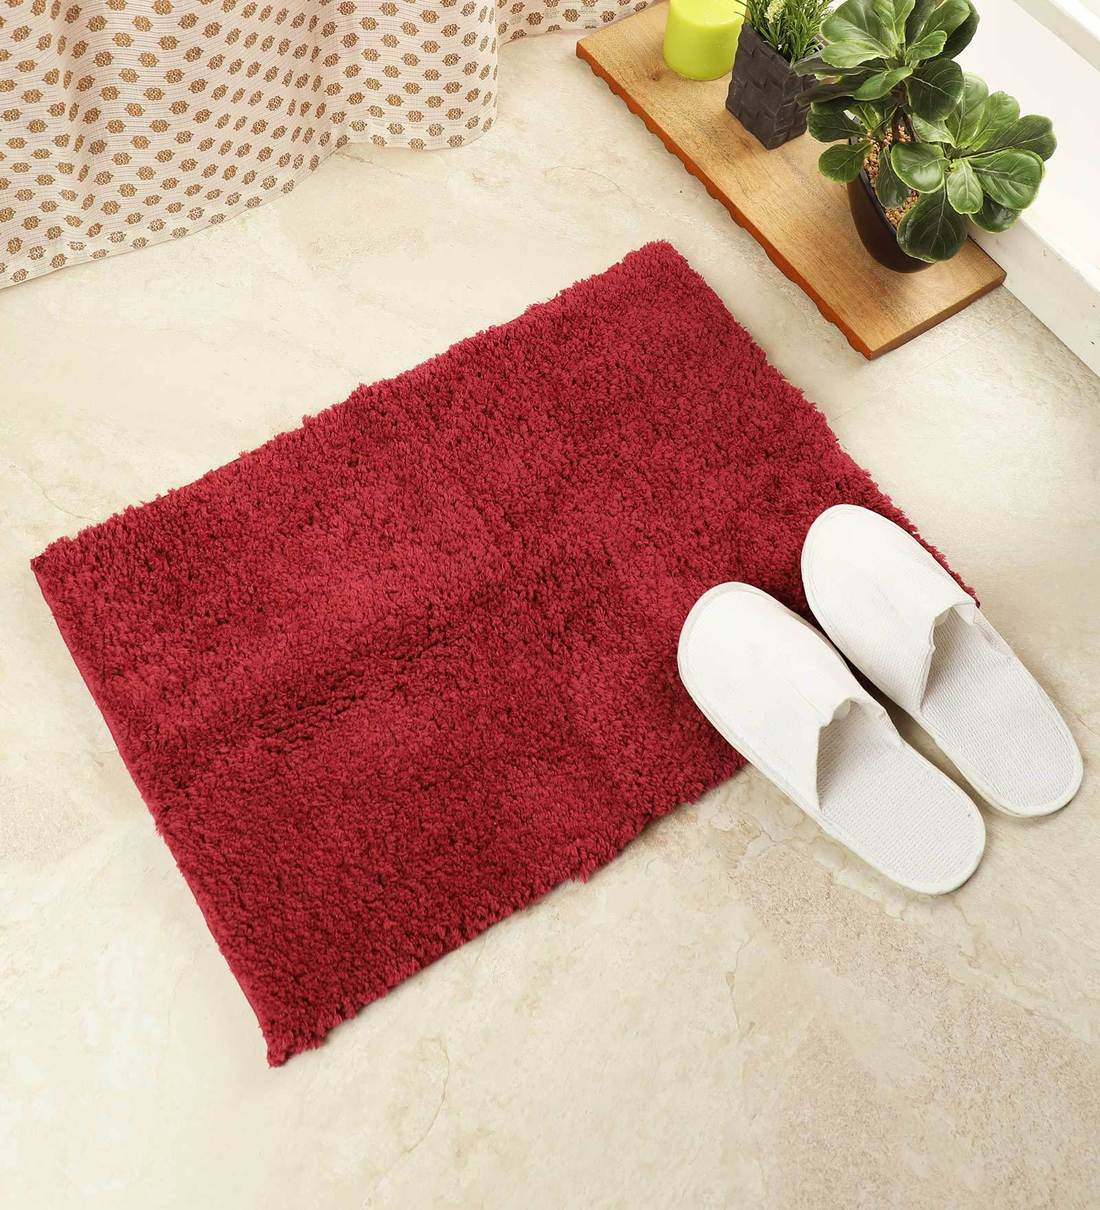 Buy Red 100 Drylon Season Best Bath Mat By Core Designed By Spaces Online Solid Colour Bath Mats Furnishings Home Decor Pepperfry Product